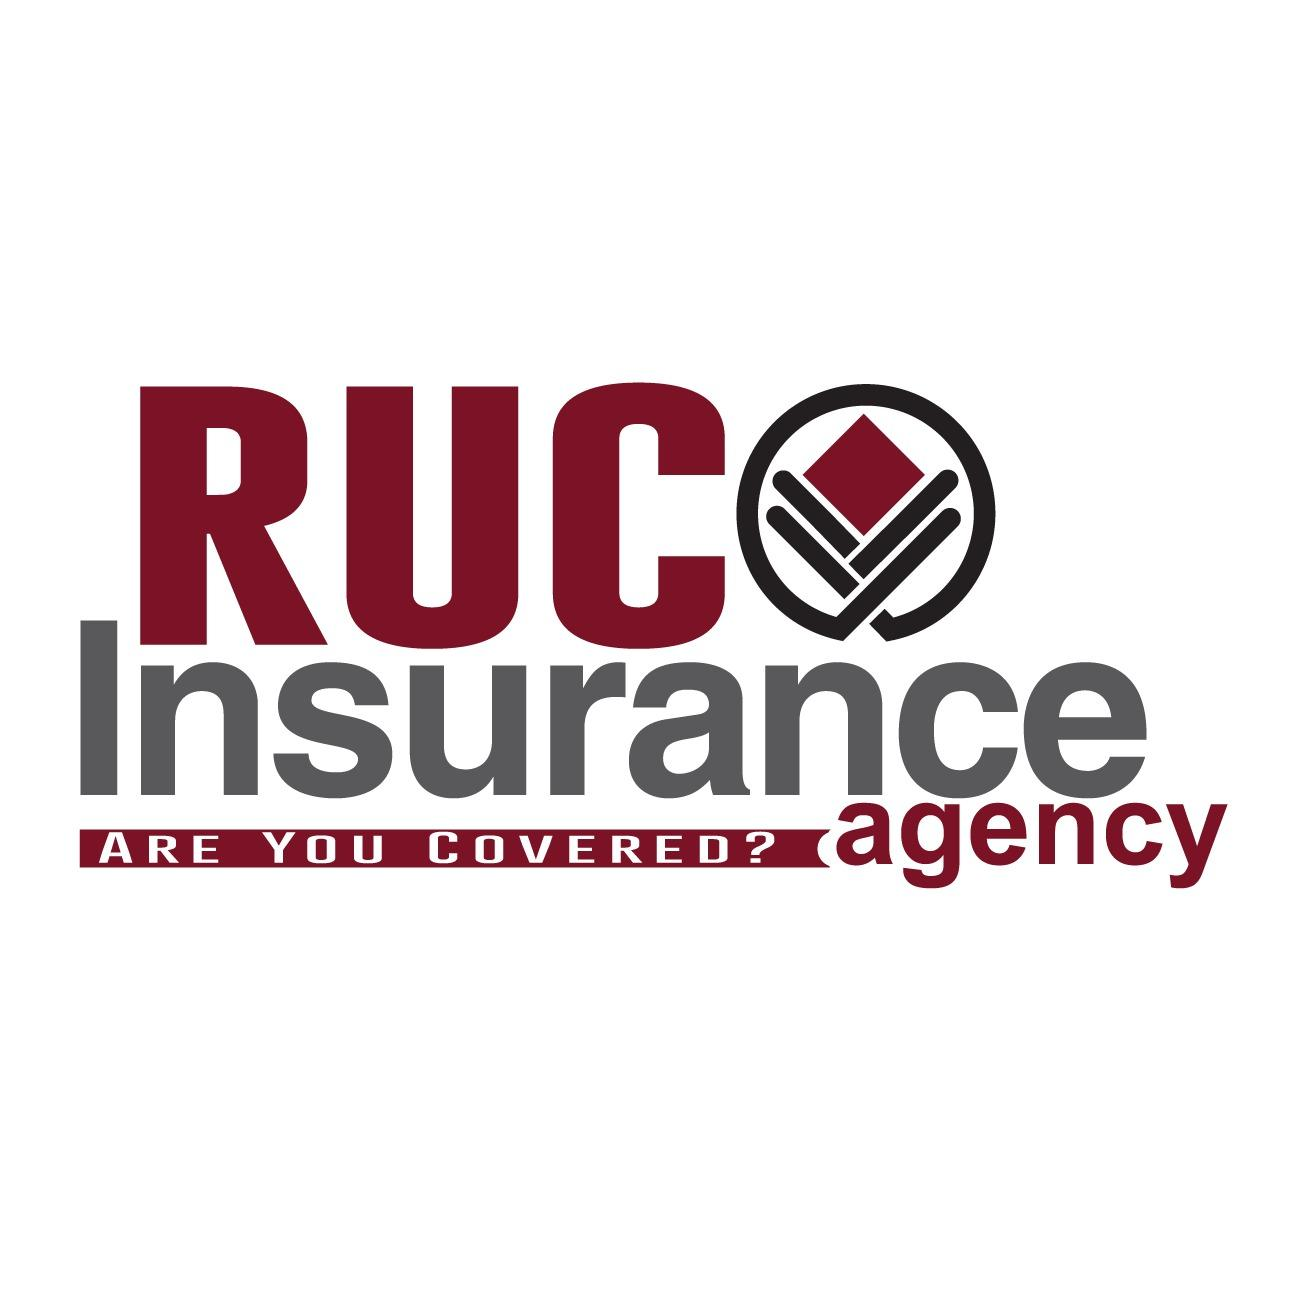 Are You Covered Inc. dba R U C Insurance Agency